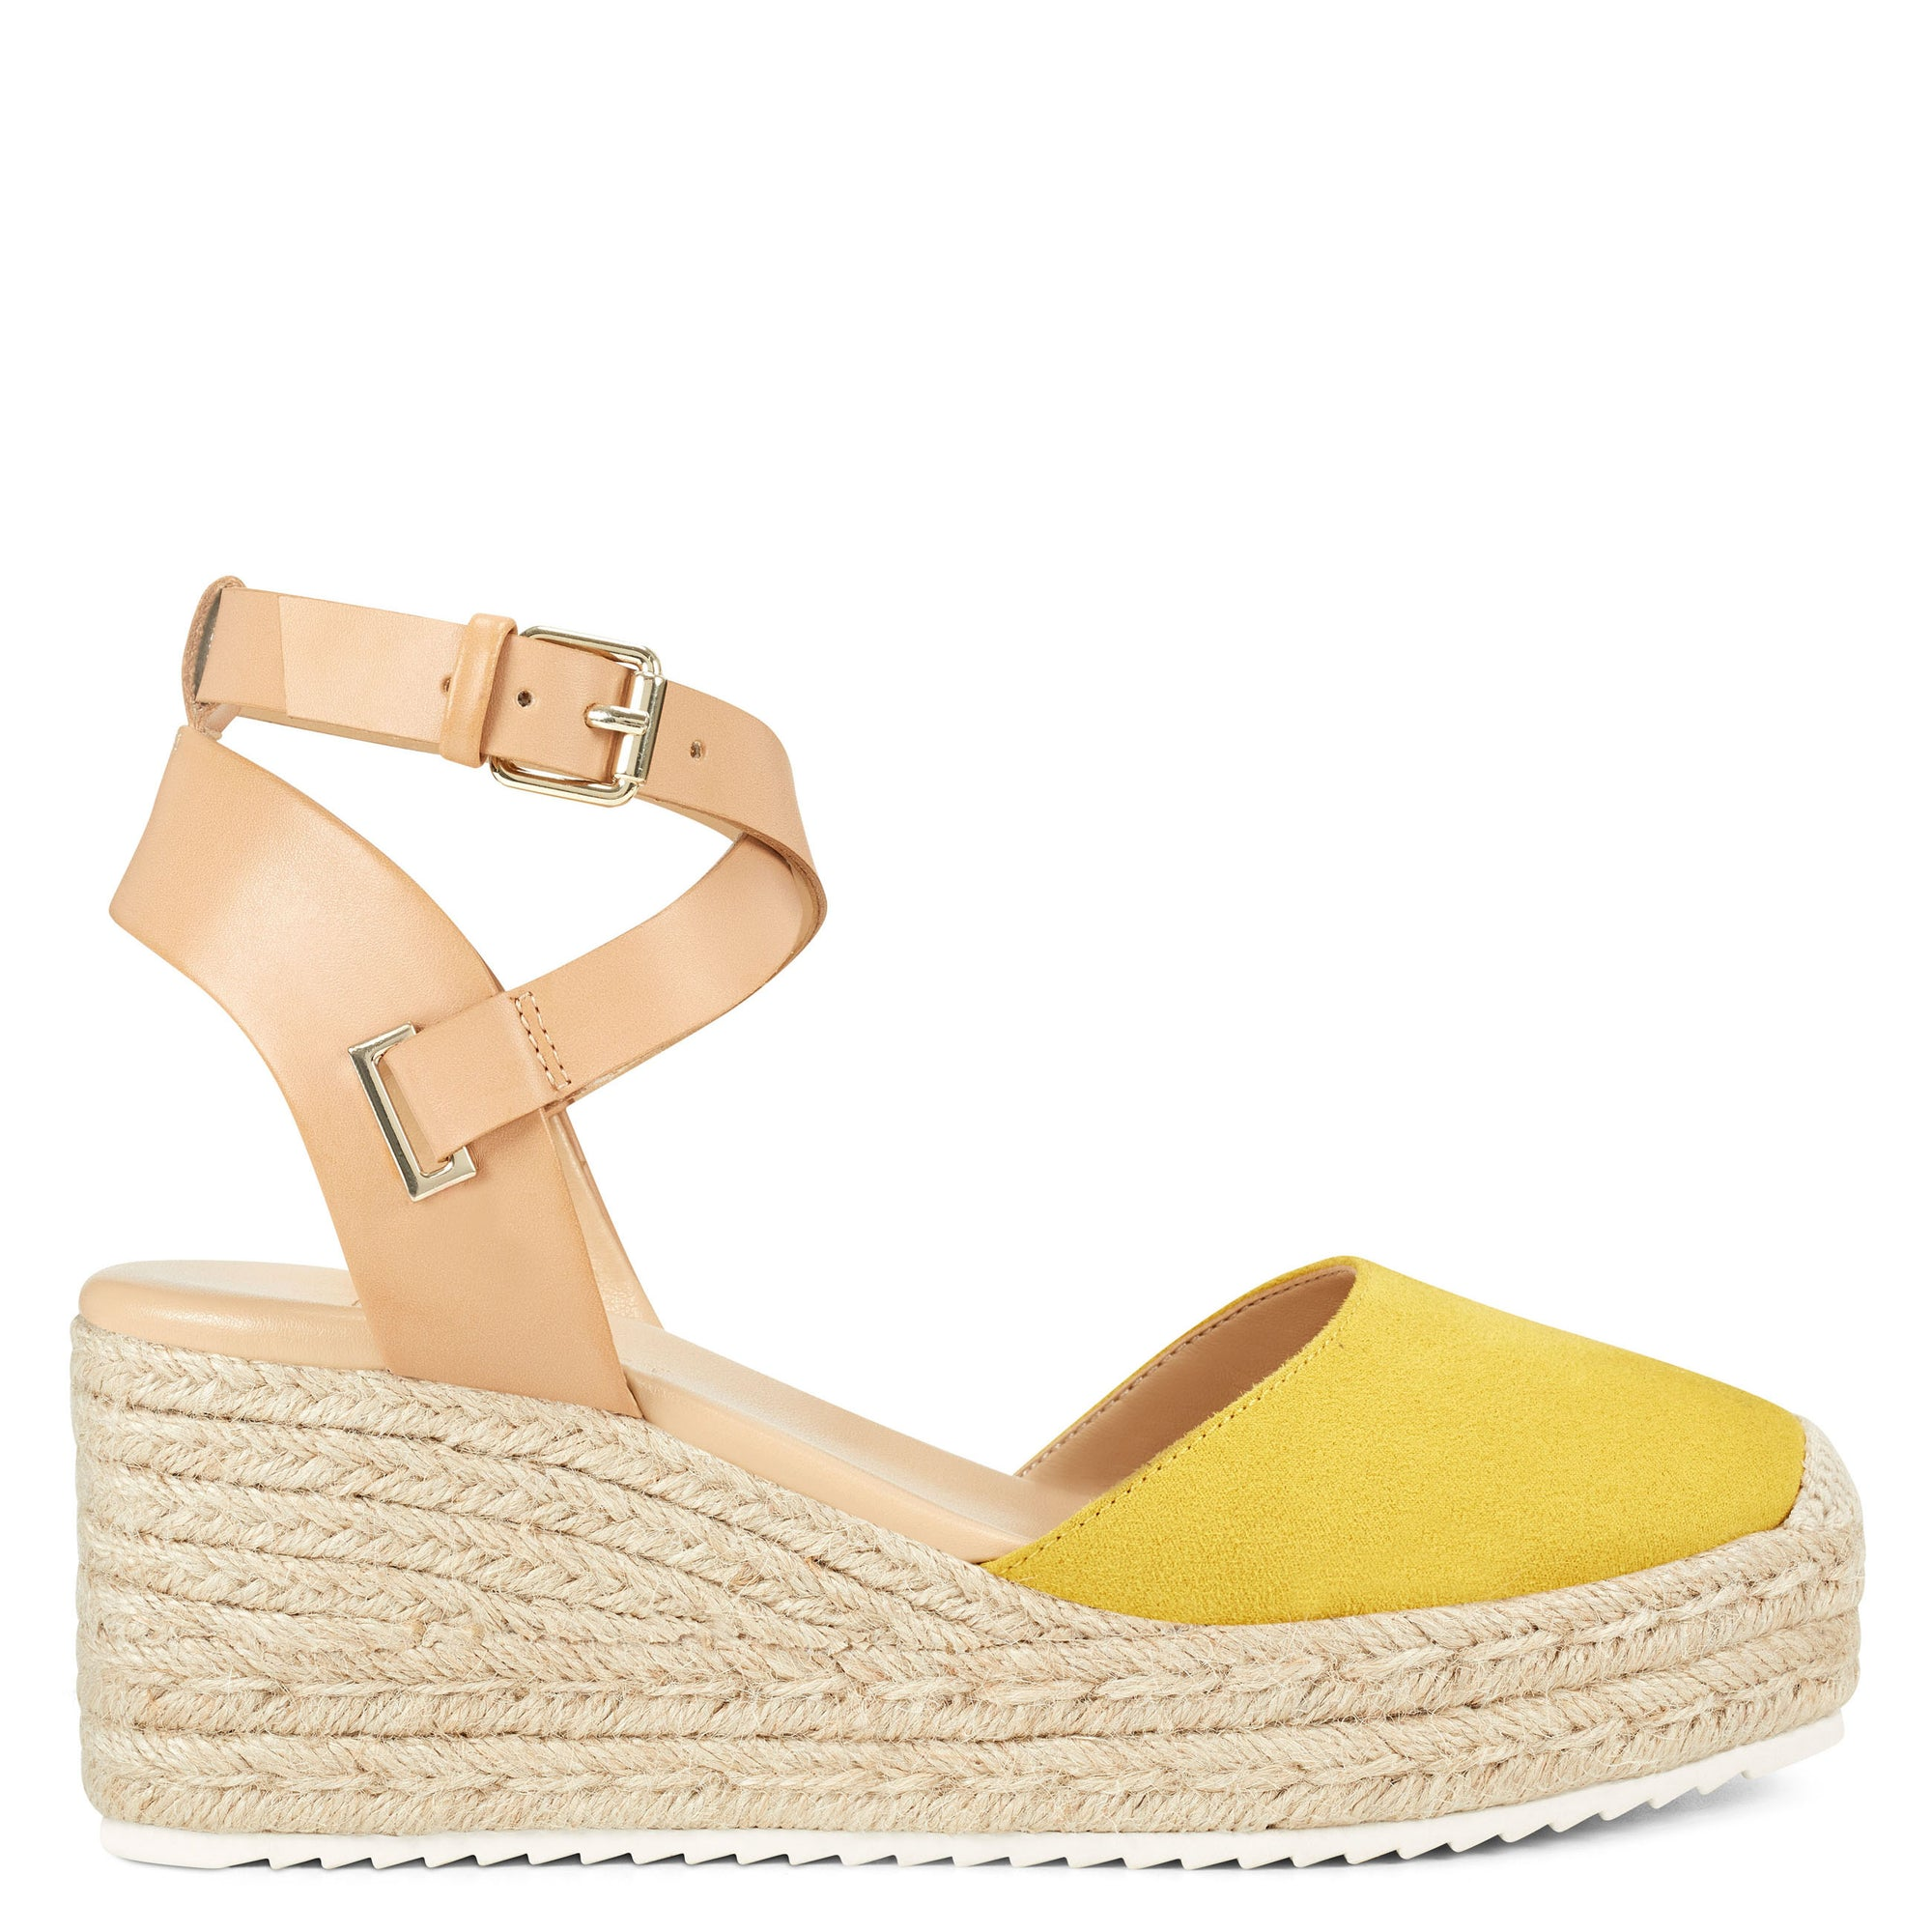 ava-espadrille-wedge-sandals-in-yellow-fabric